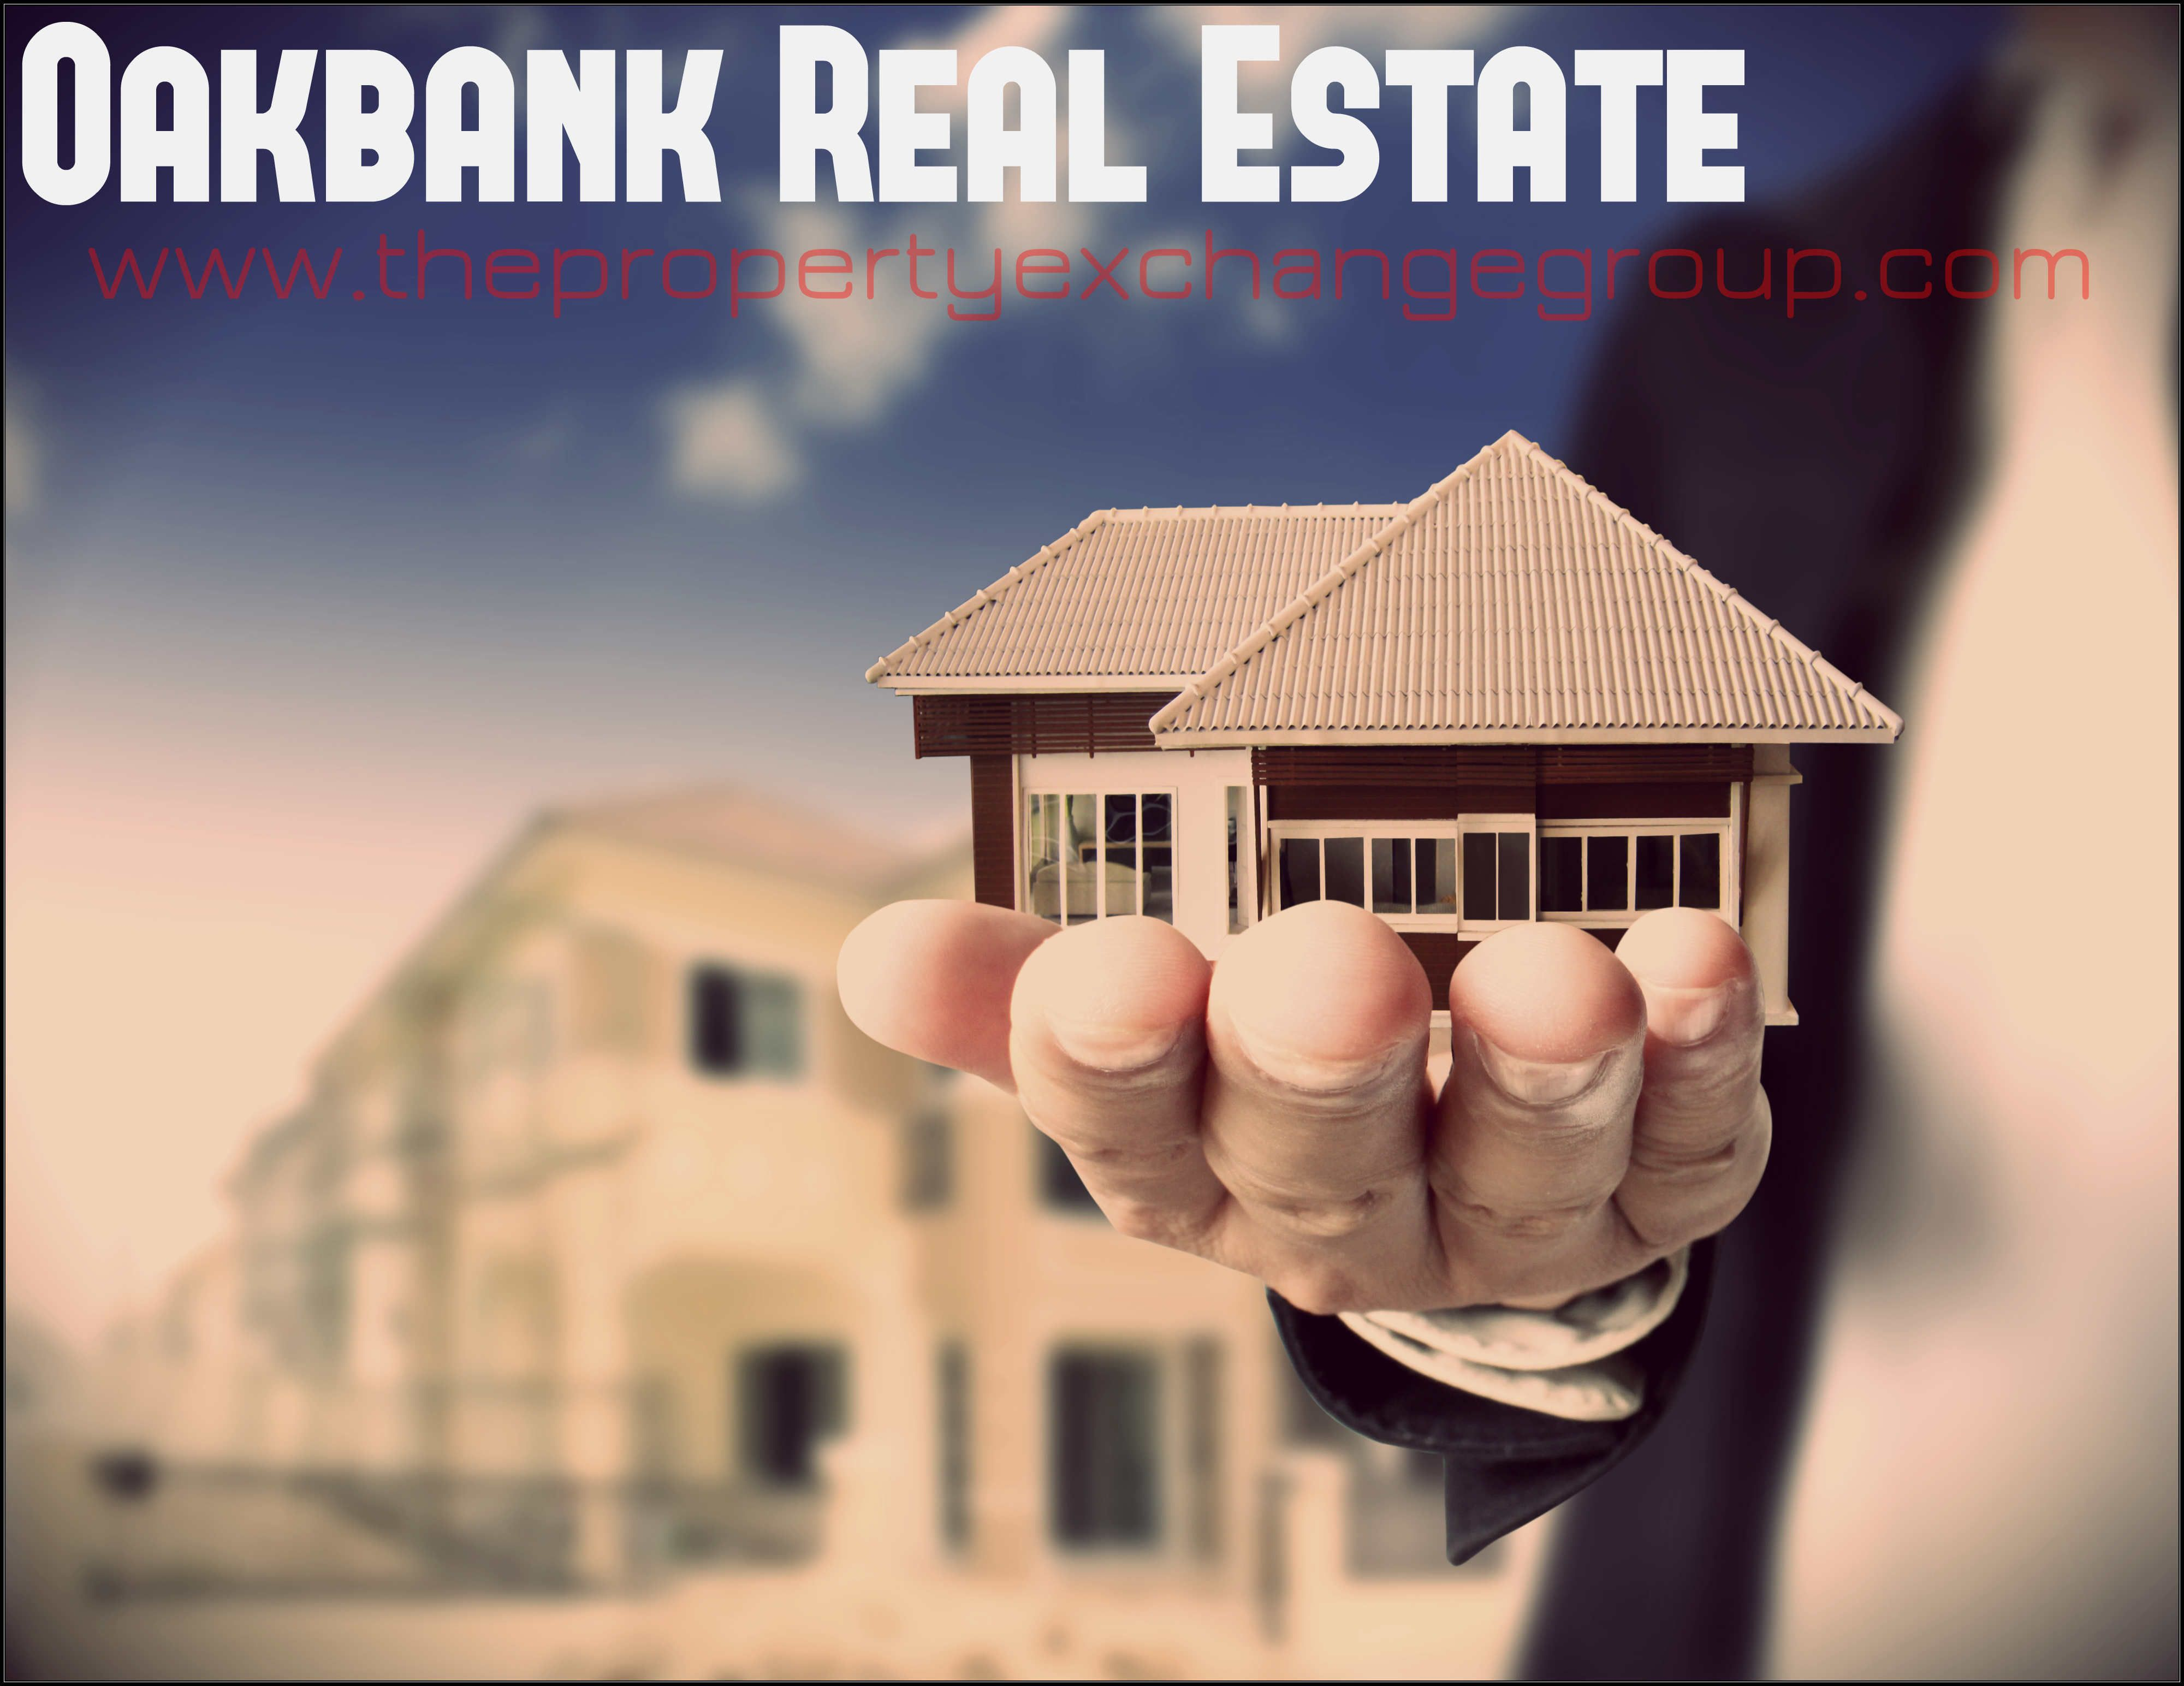 Do you want to double your income within the next six months? We will teach you how to turn your time and energy into a profit in Oakbank real estate. Contact us today!